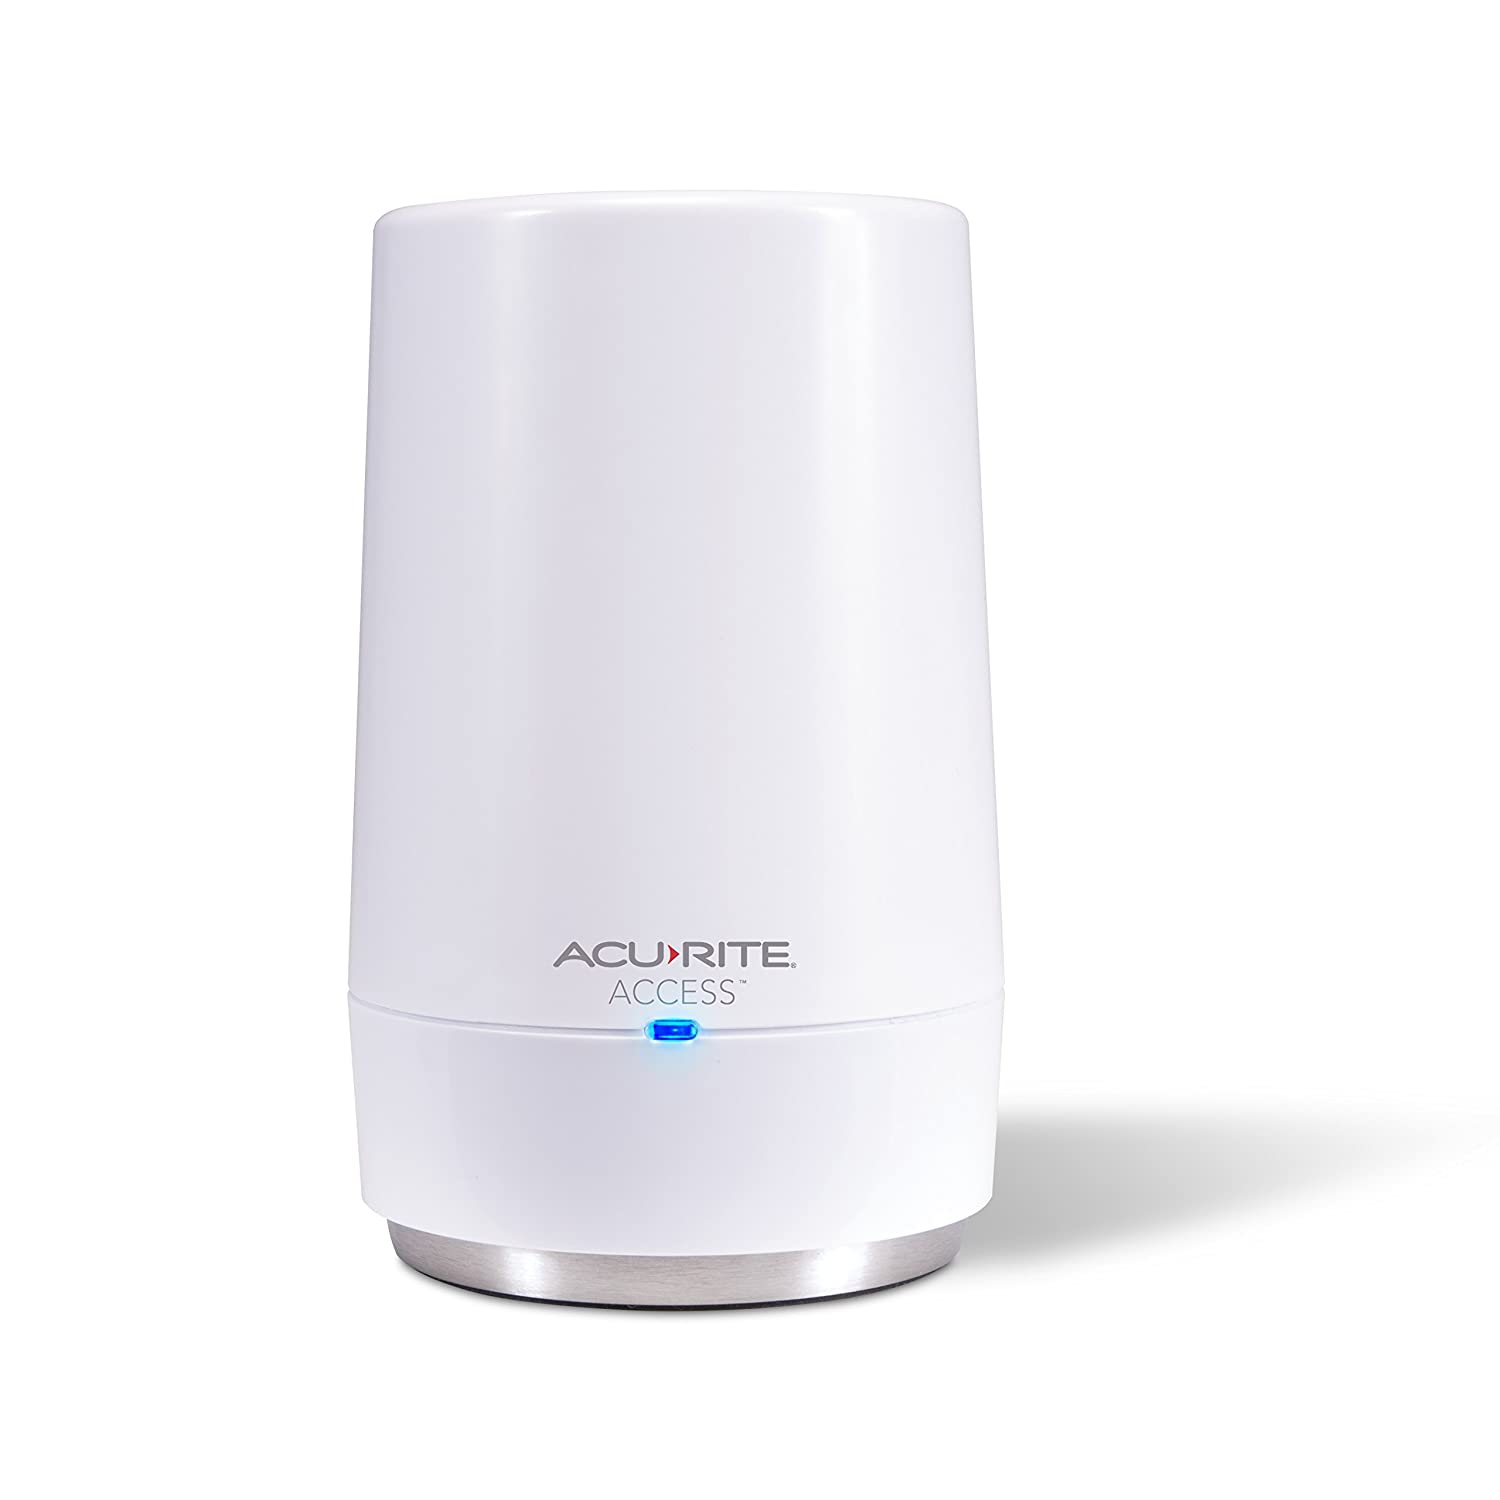 AcuRite 09155M AcuRite Access for Remote Monitoring of AcuRite Weather  Stations, Compatible with Amazon Alexa